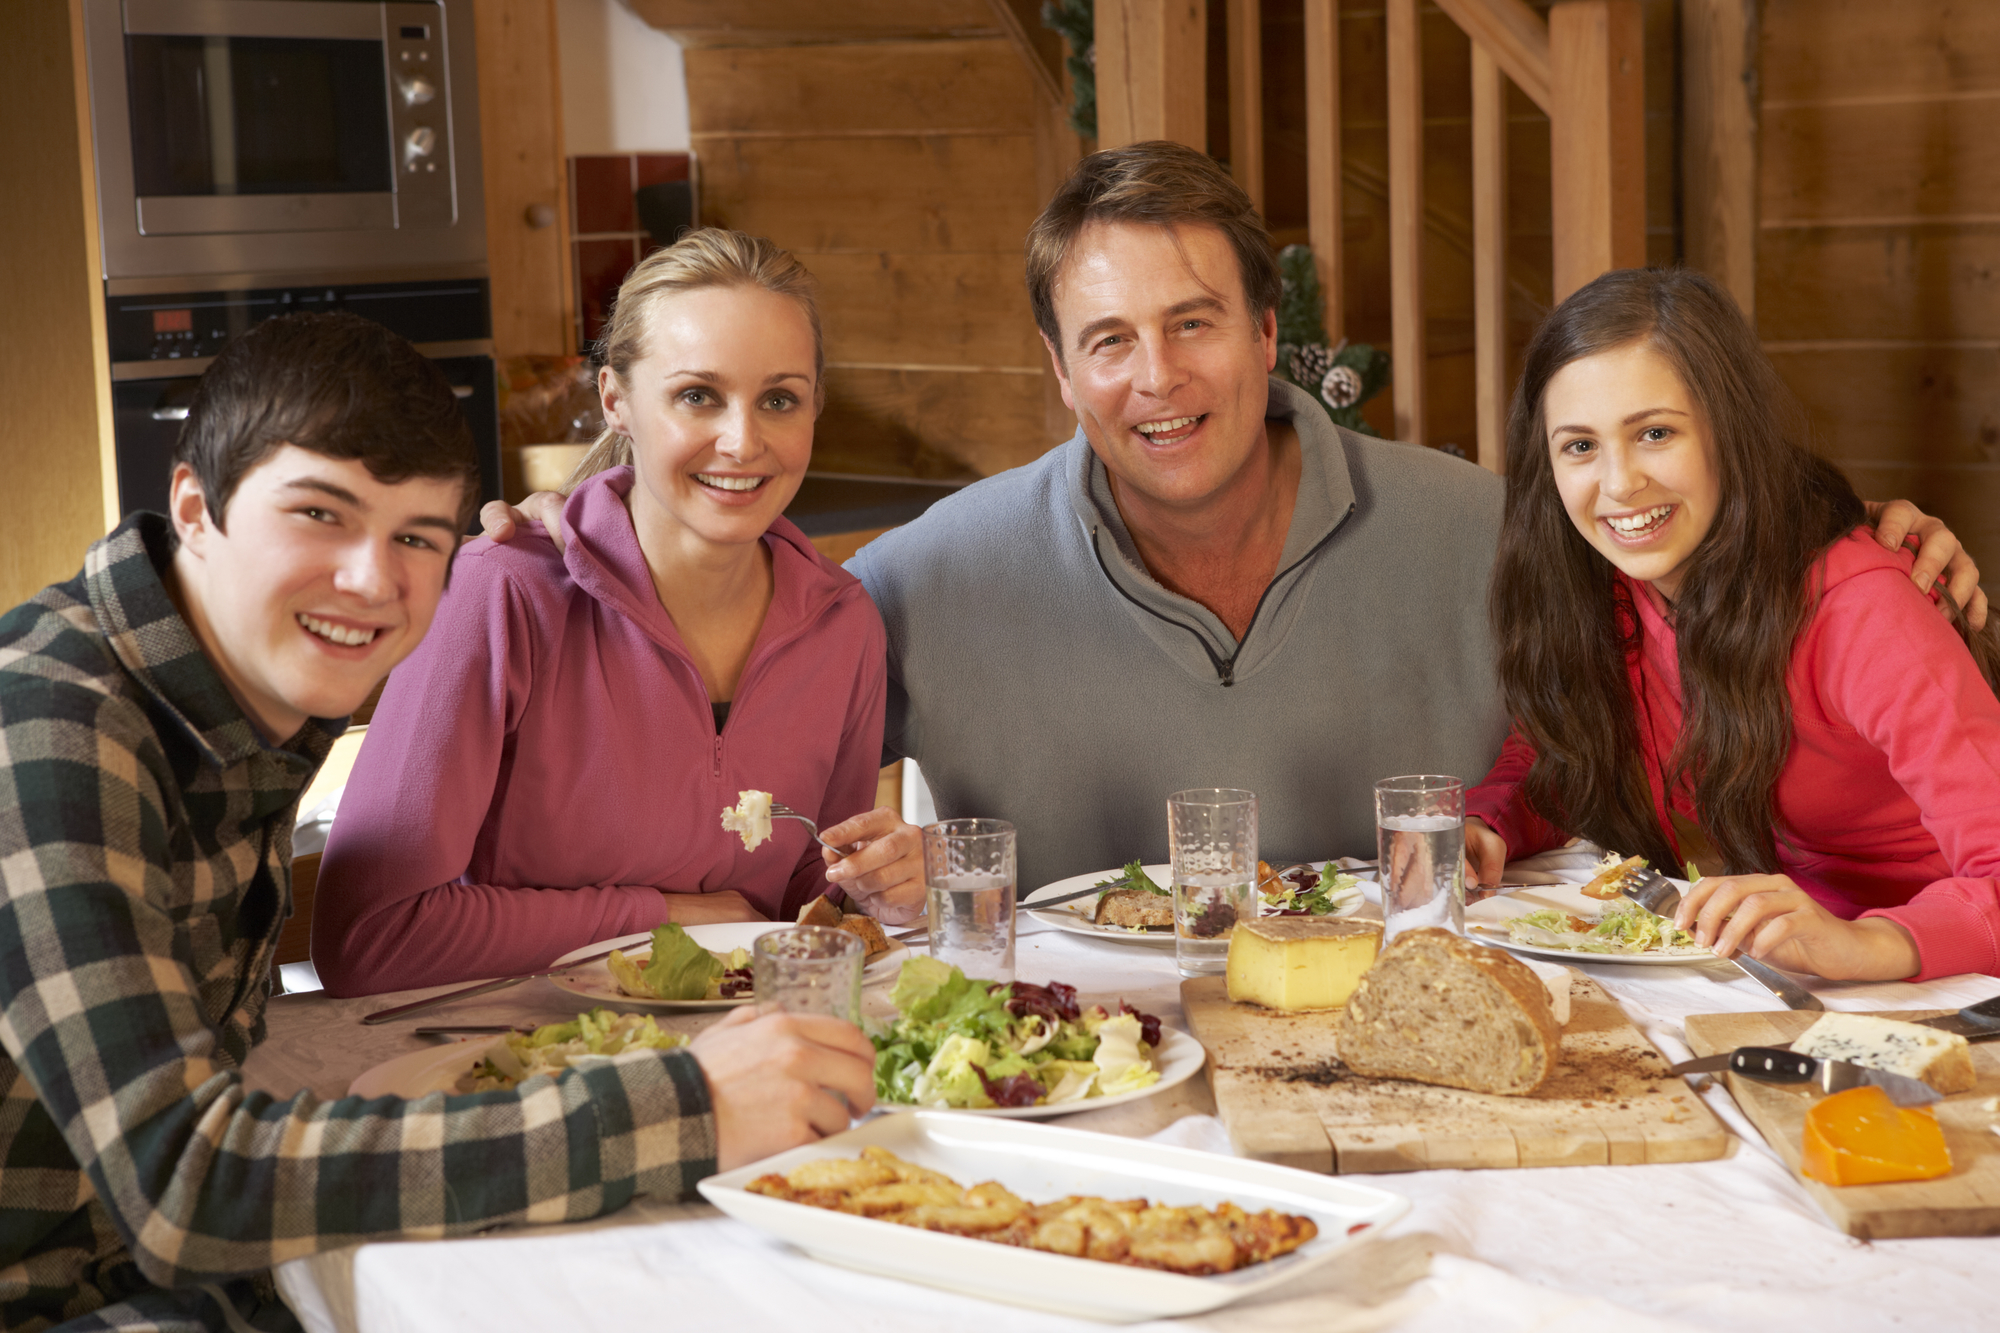 Eat As A Family